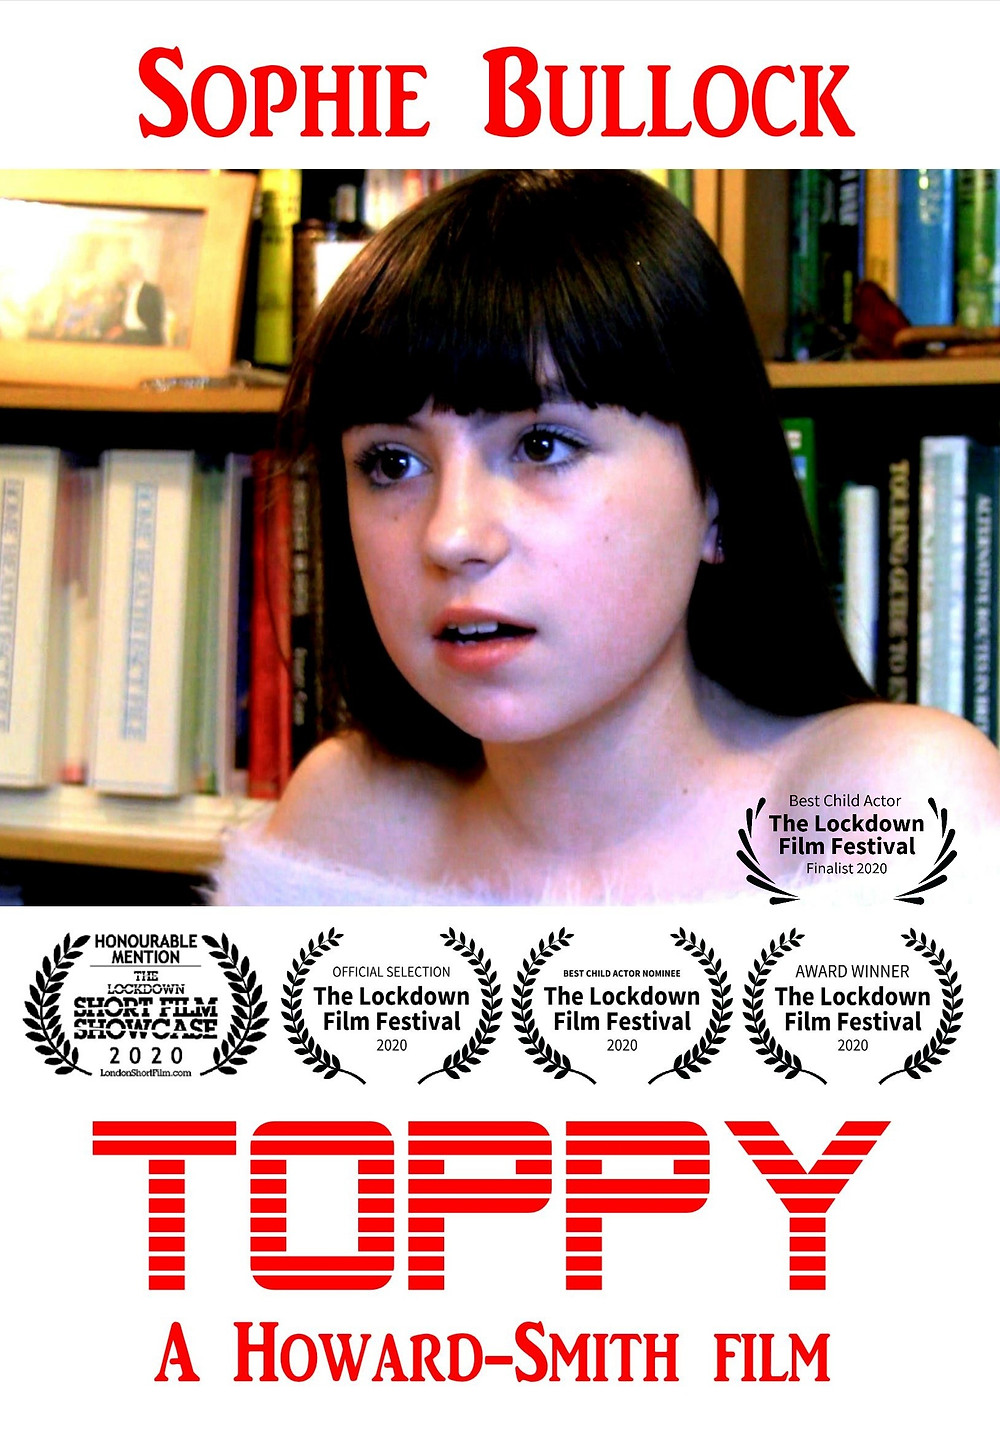 Poster for Toppy showing protagonist.